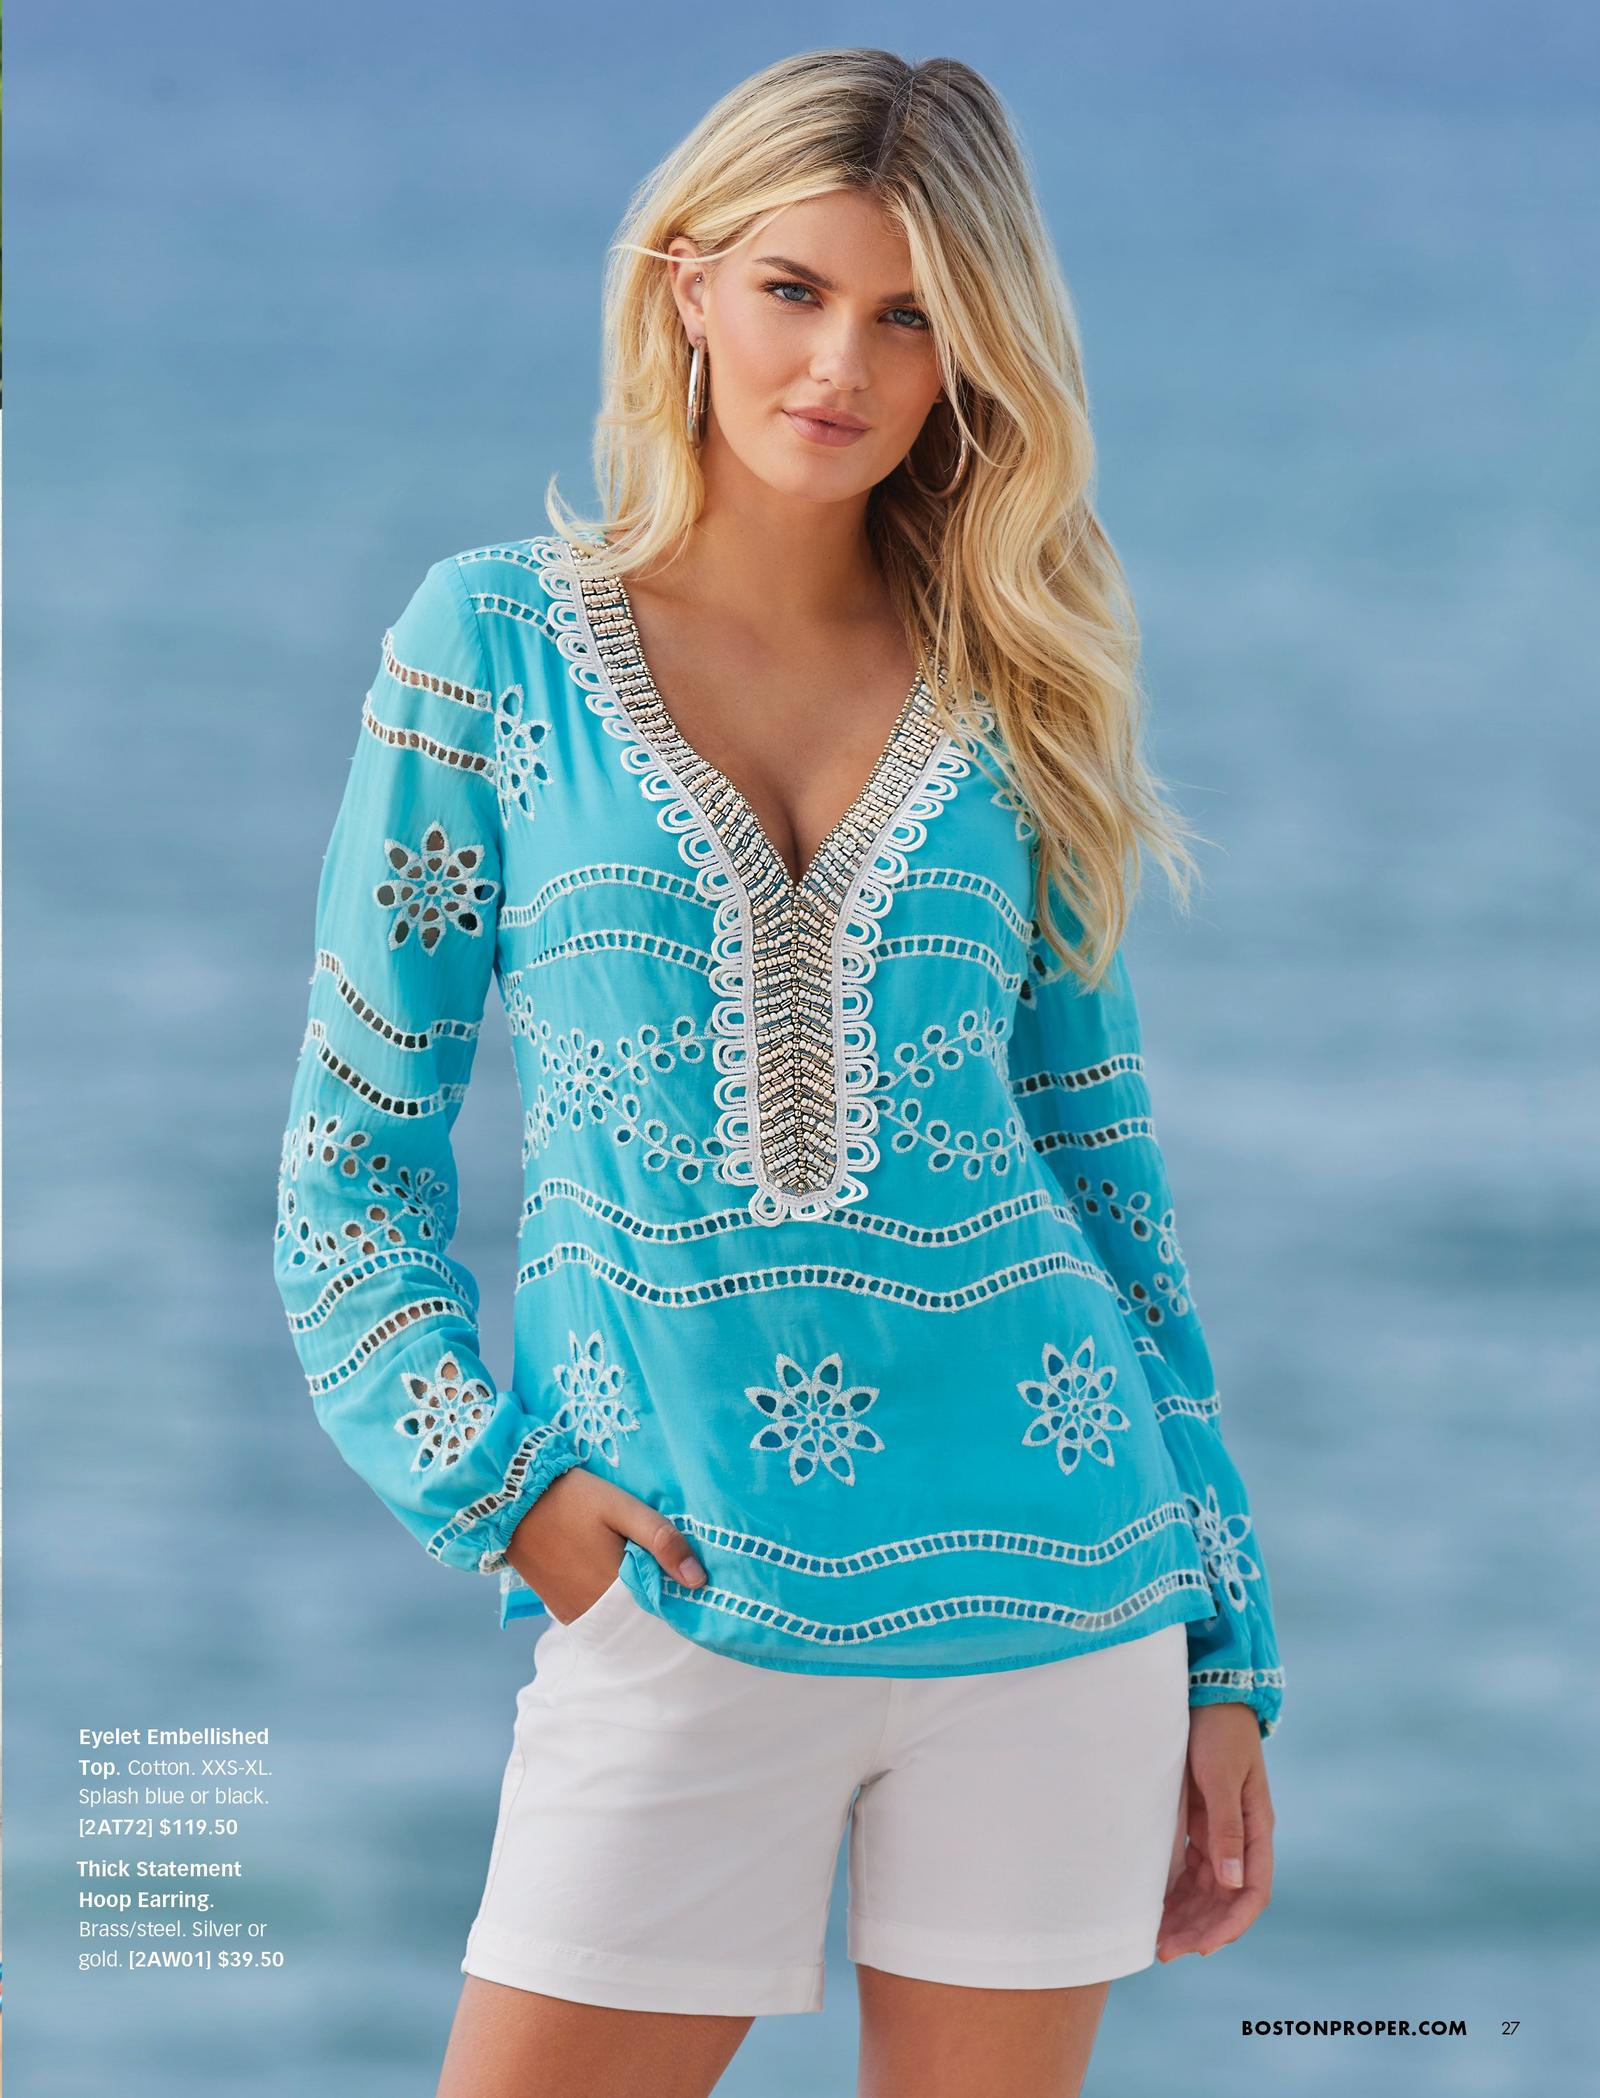 model wearing a light blue and white eyelet long-sleeve tunic top with silver embellishments and white shorts.